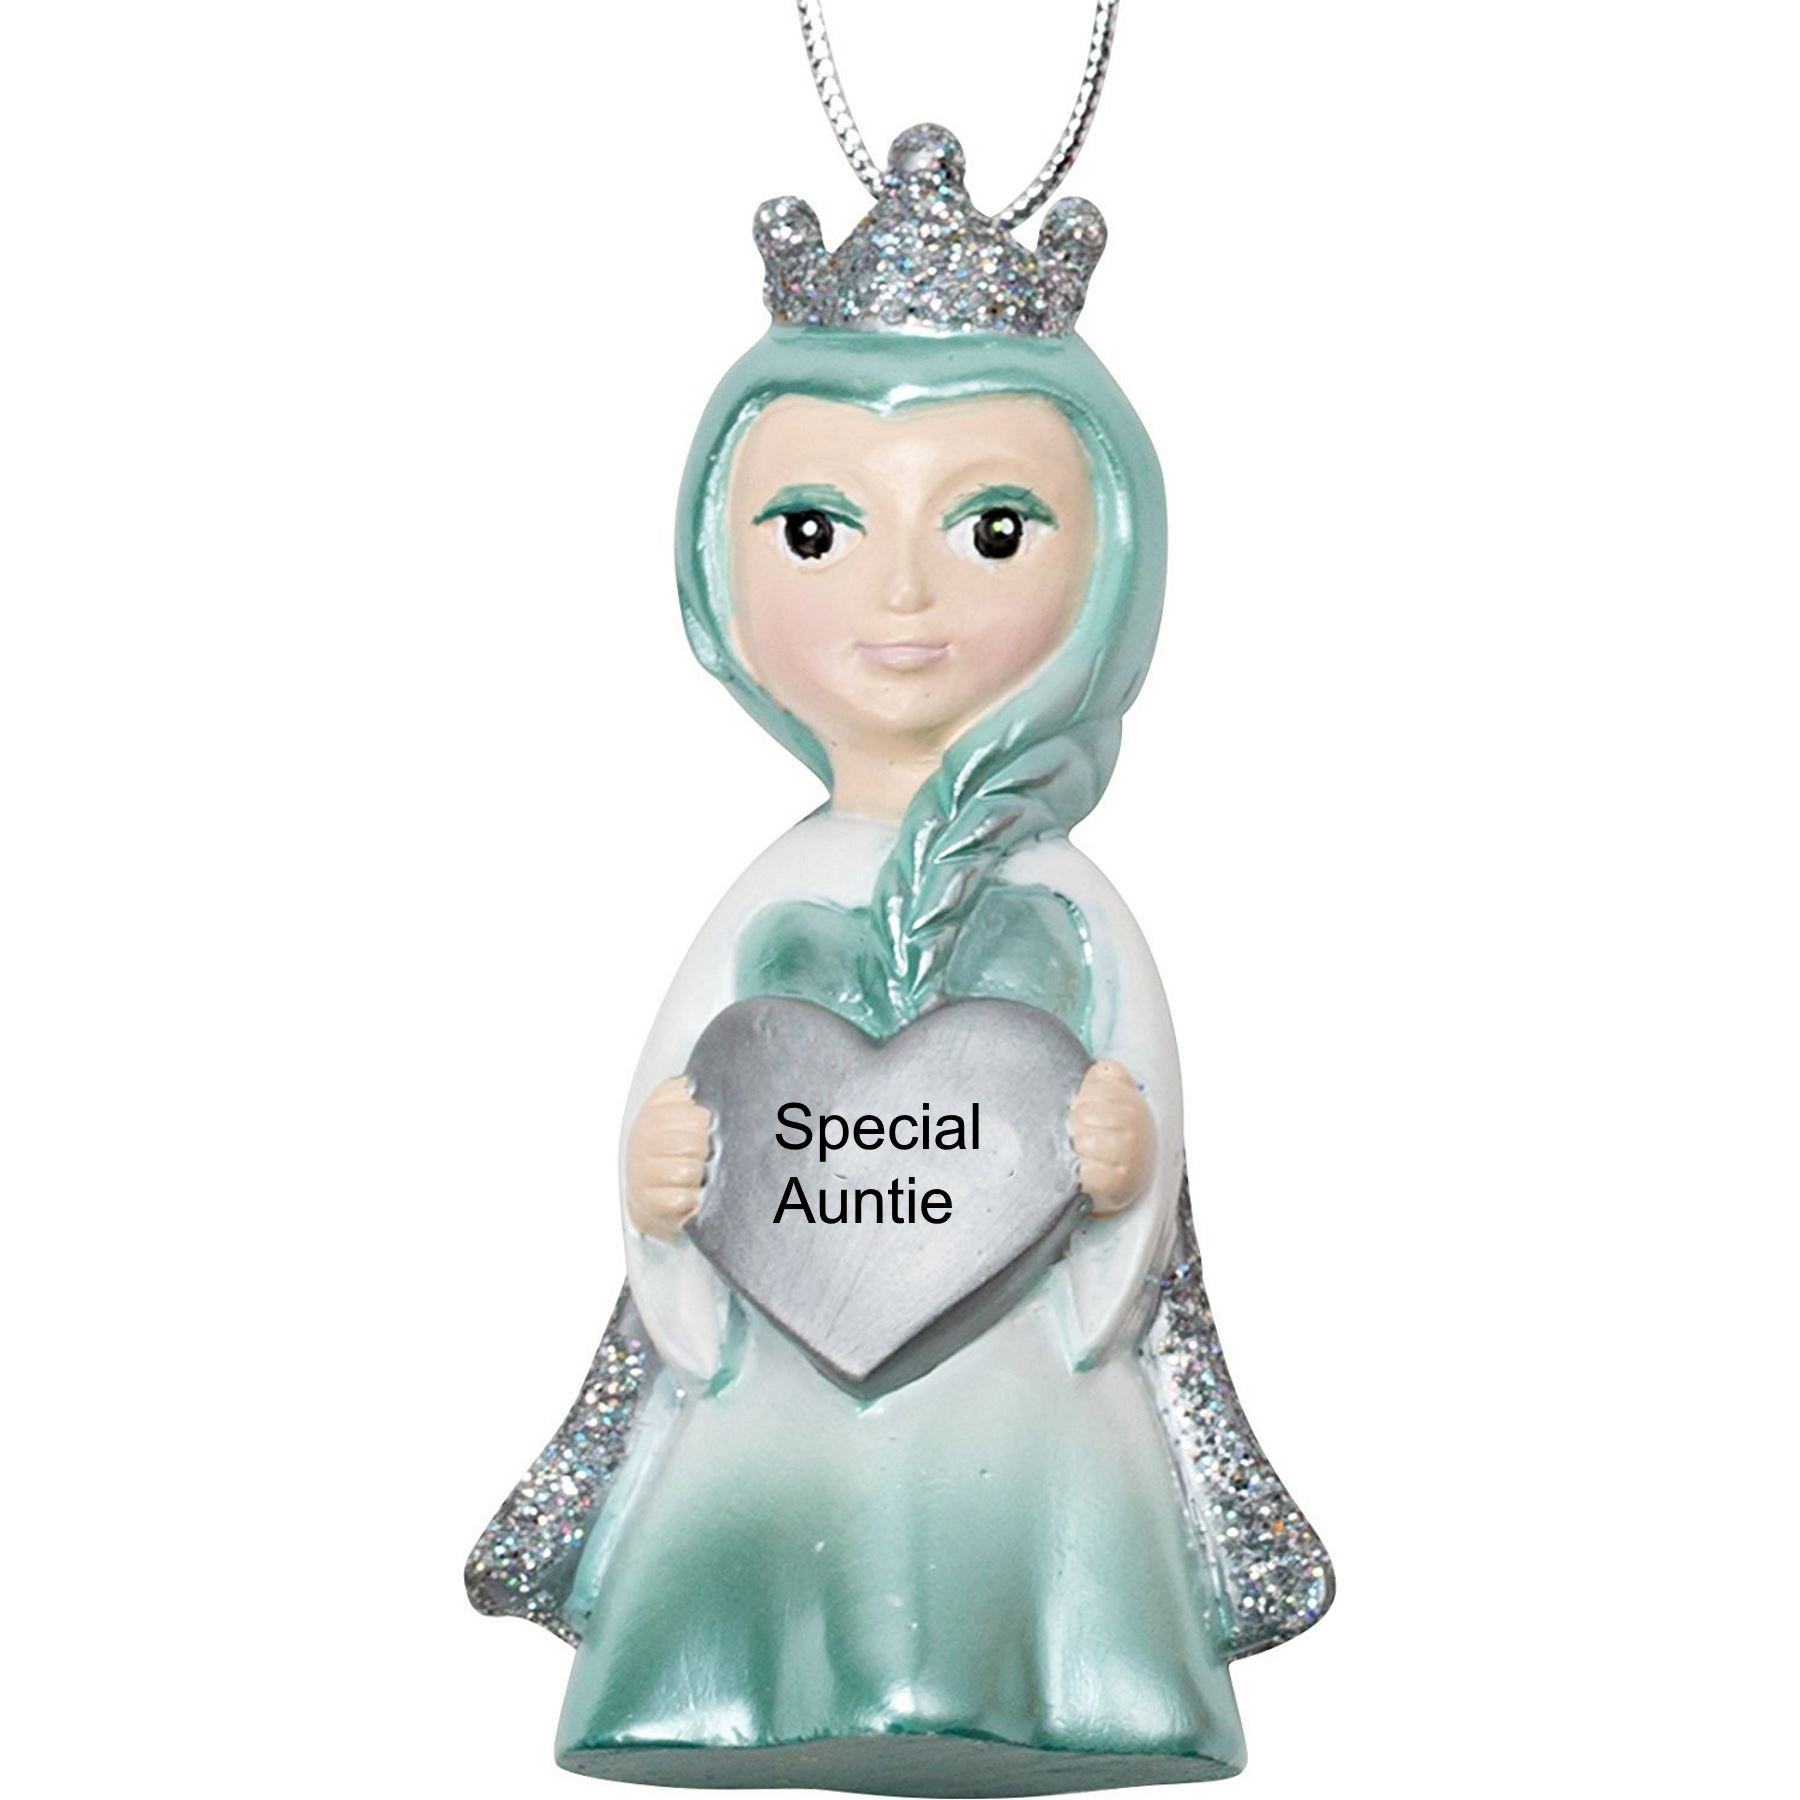 Jack Frost Xmas Ornament Special Relative Sentiment Christmas Tree Decorations